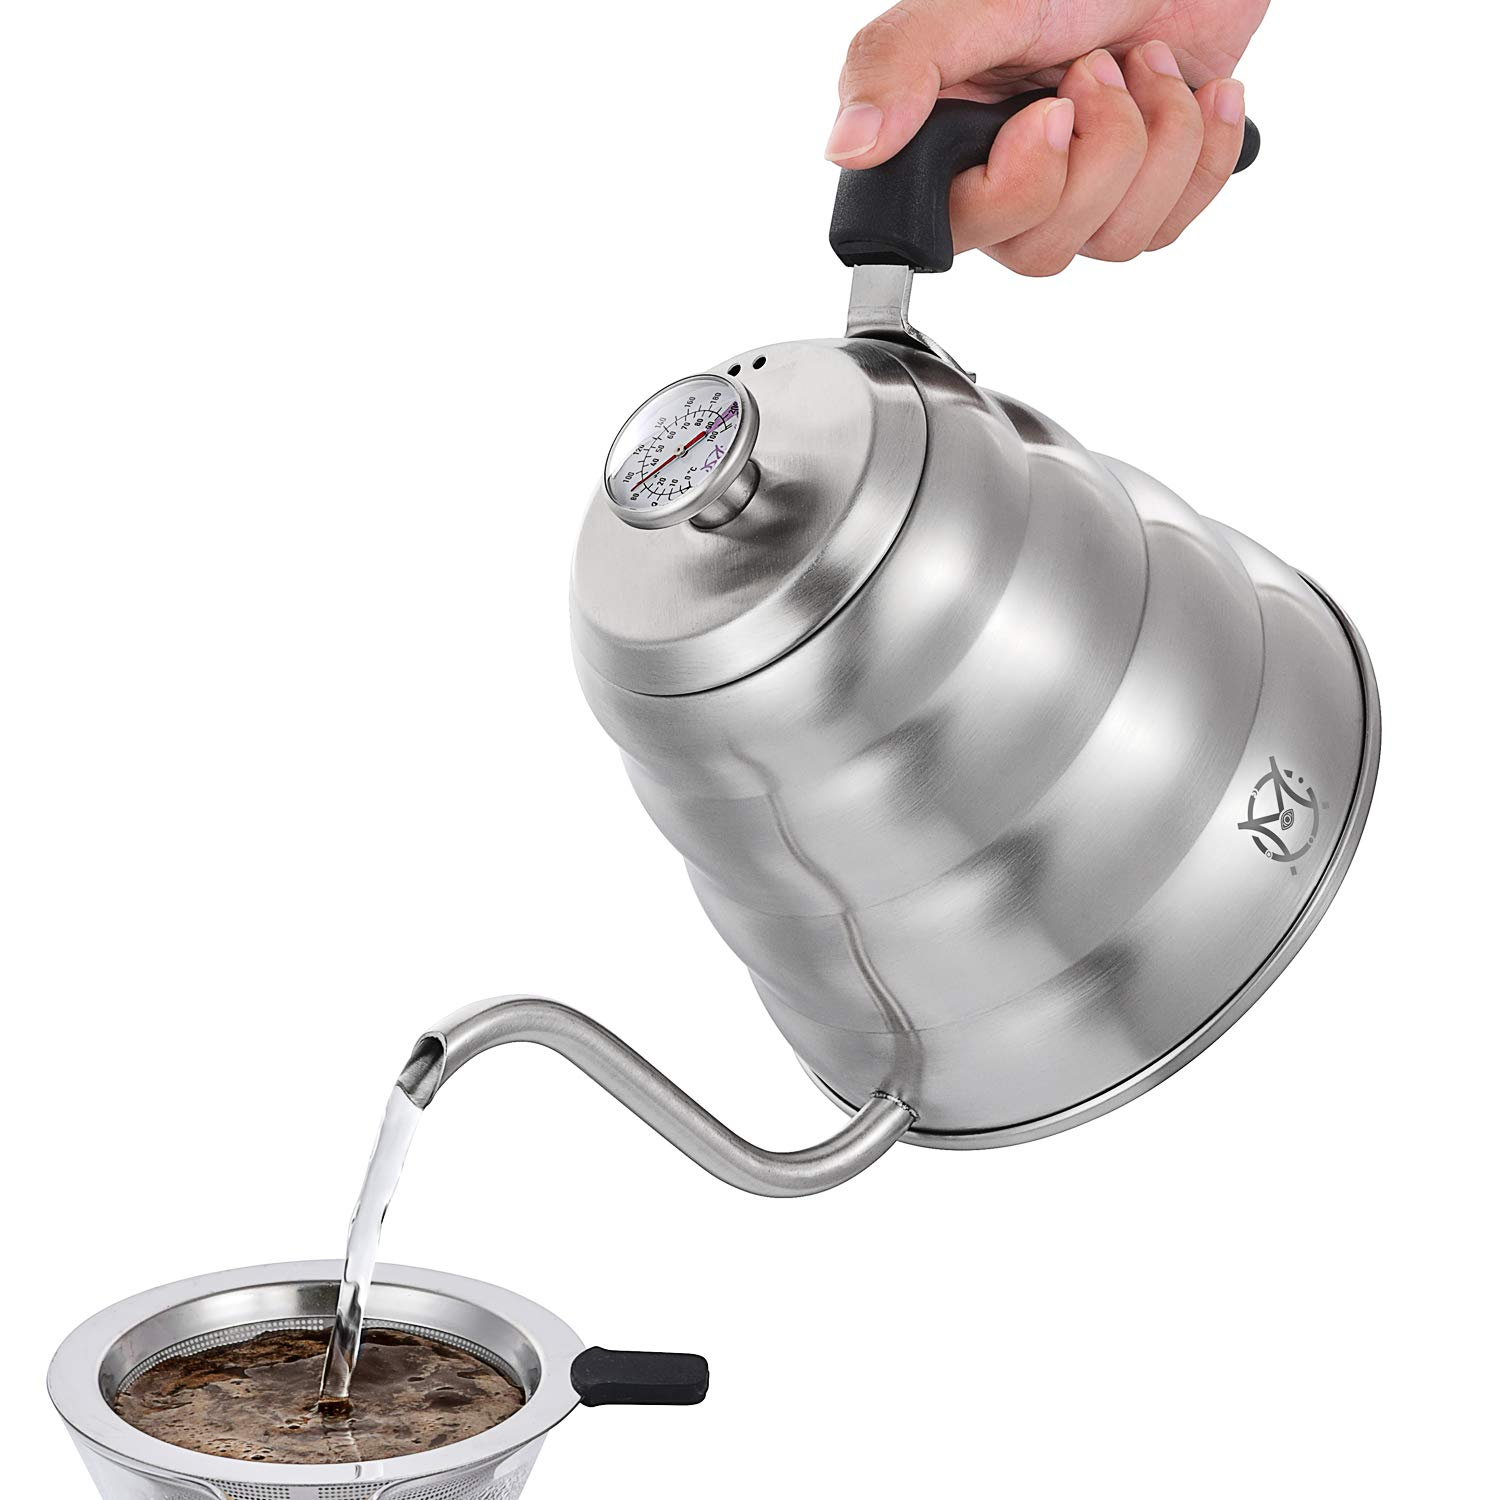 Magicafé Pour Over Coffee Kettle - Stainless Steel Gooseneck with Built In Thermometer for Exact Temperature - 40OZ 1.2 Liter 1200ML by MAGICAFÉ (Image #6)